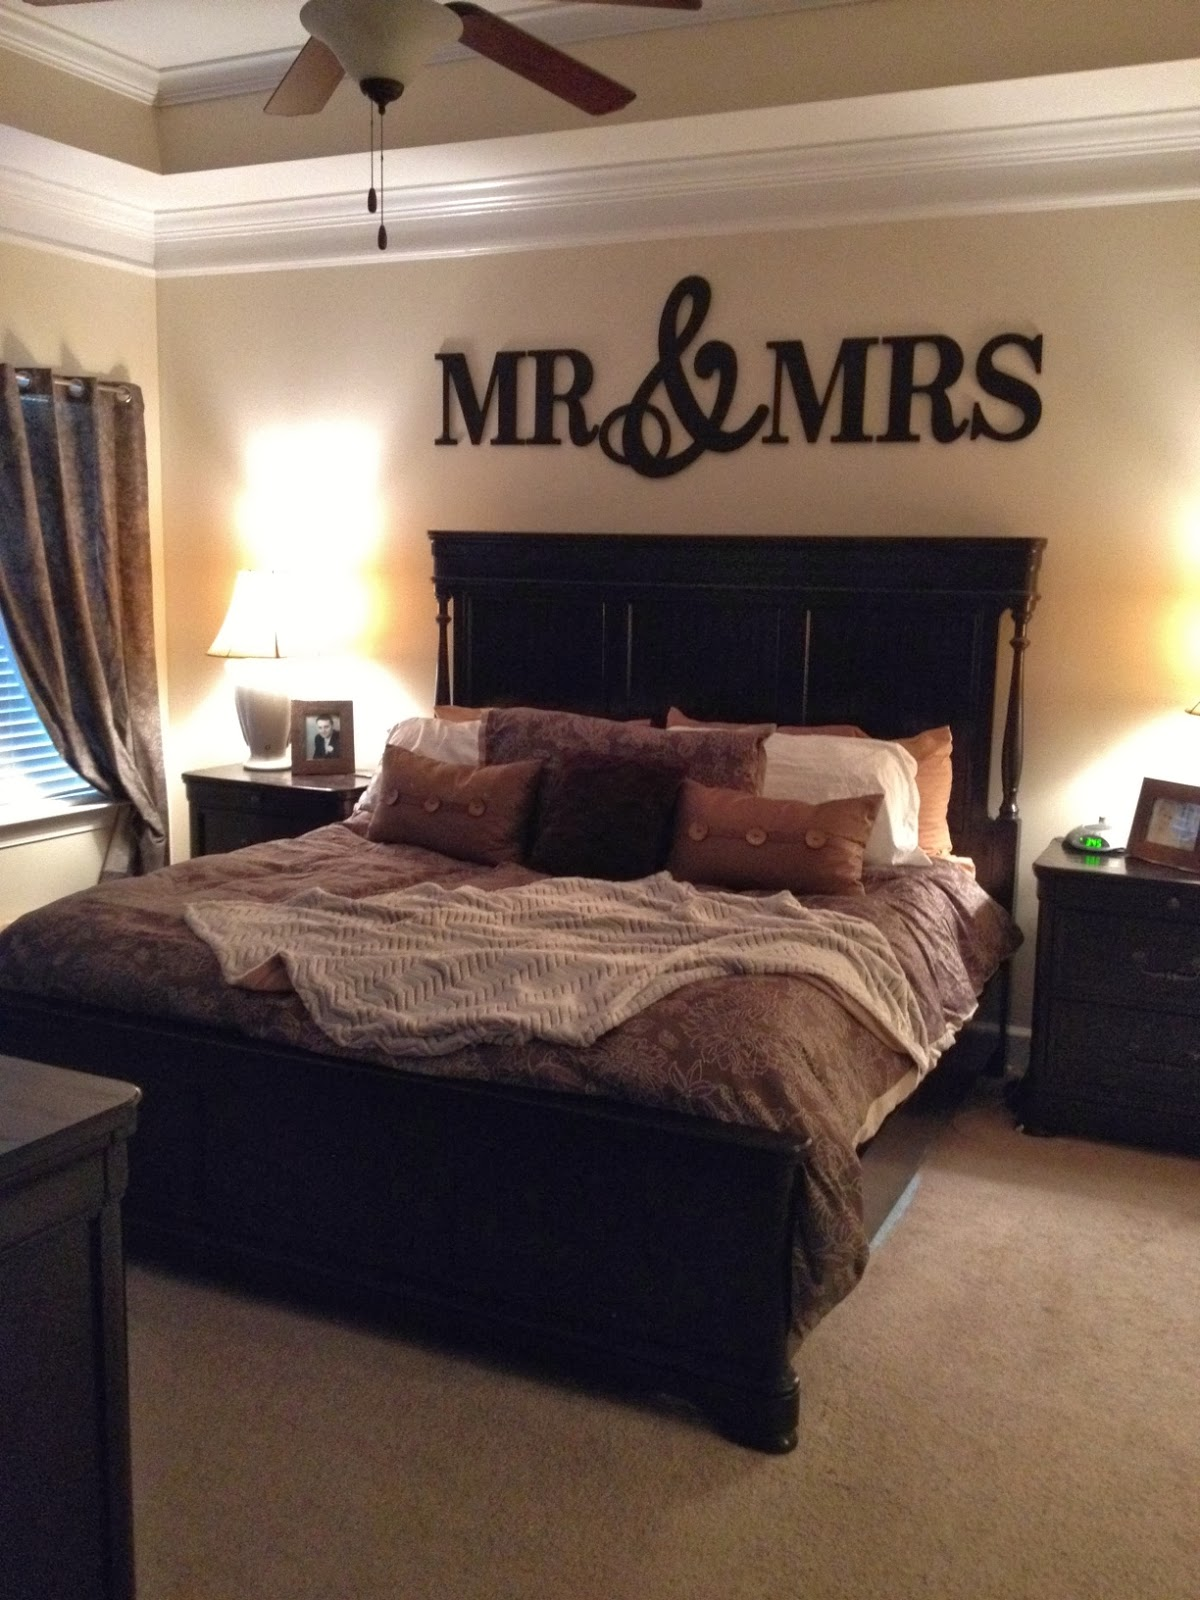 Simply the simmons mr mrs for Romantic bedroom ideas for married couples